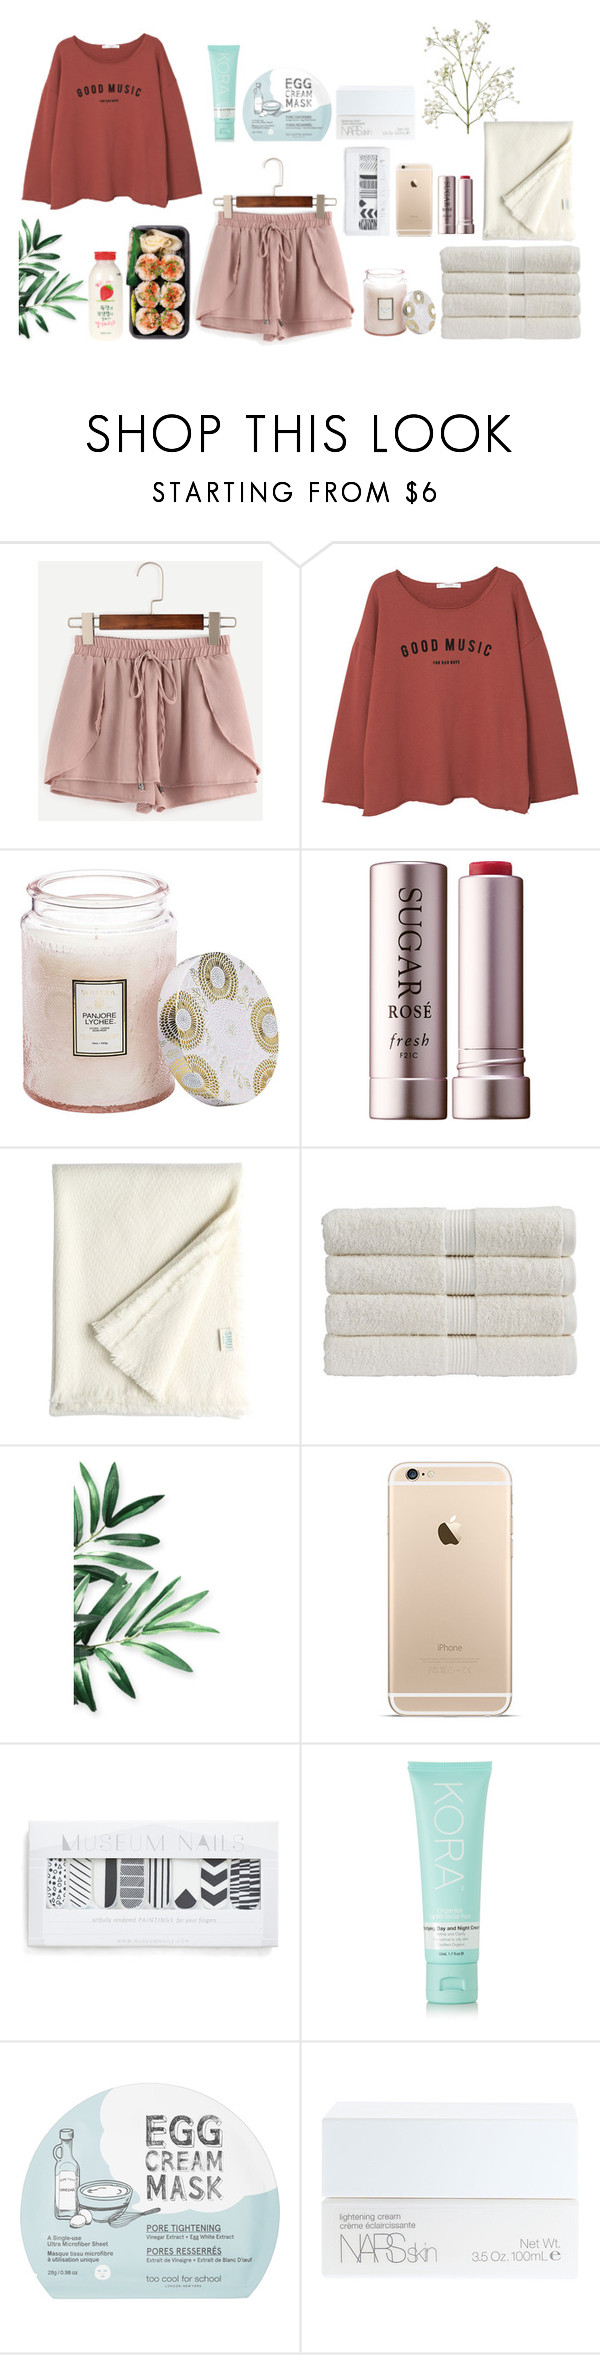 """Night routine"" by soojinchoi ❤ liked on Polyvore featuring WithChic, MANGO, Voluspa, Fresh, Shuj, Christy, KORA Organics by Miranda Kerr, too cool for school, NARS Cosmetics and CO"